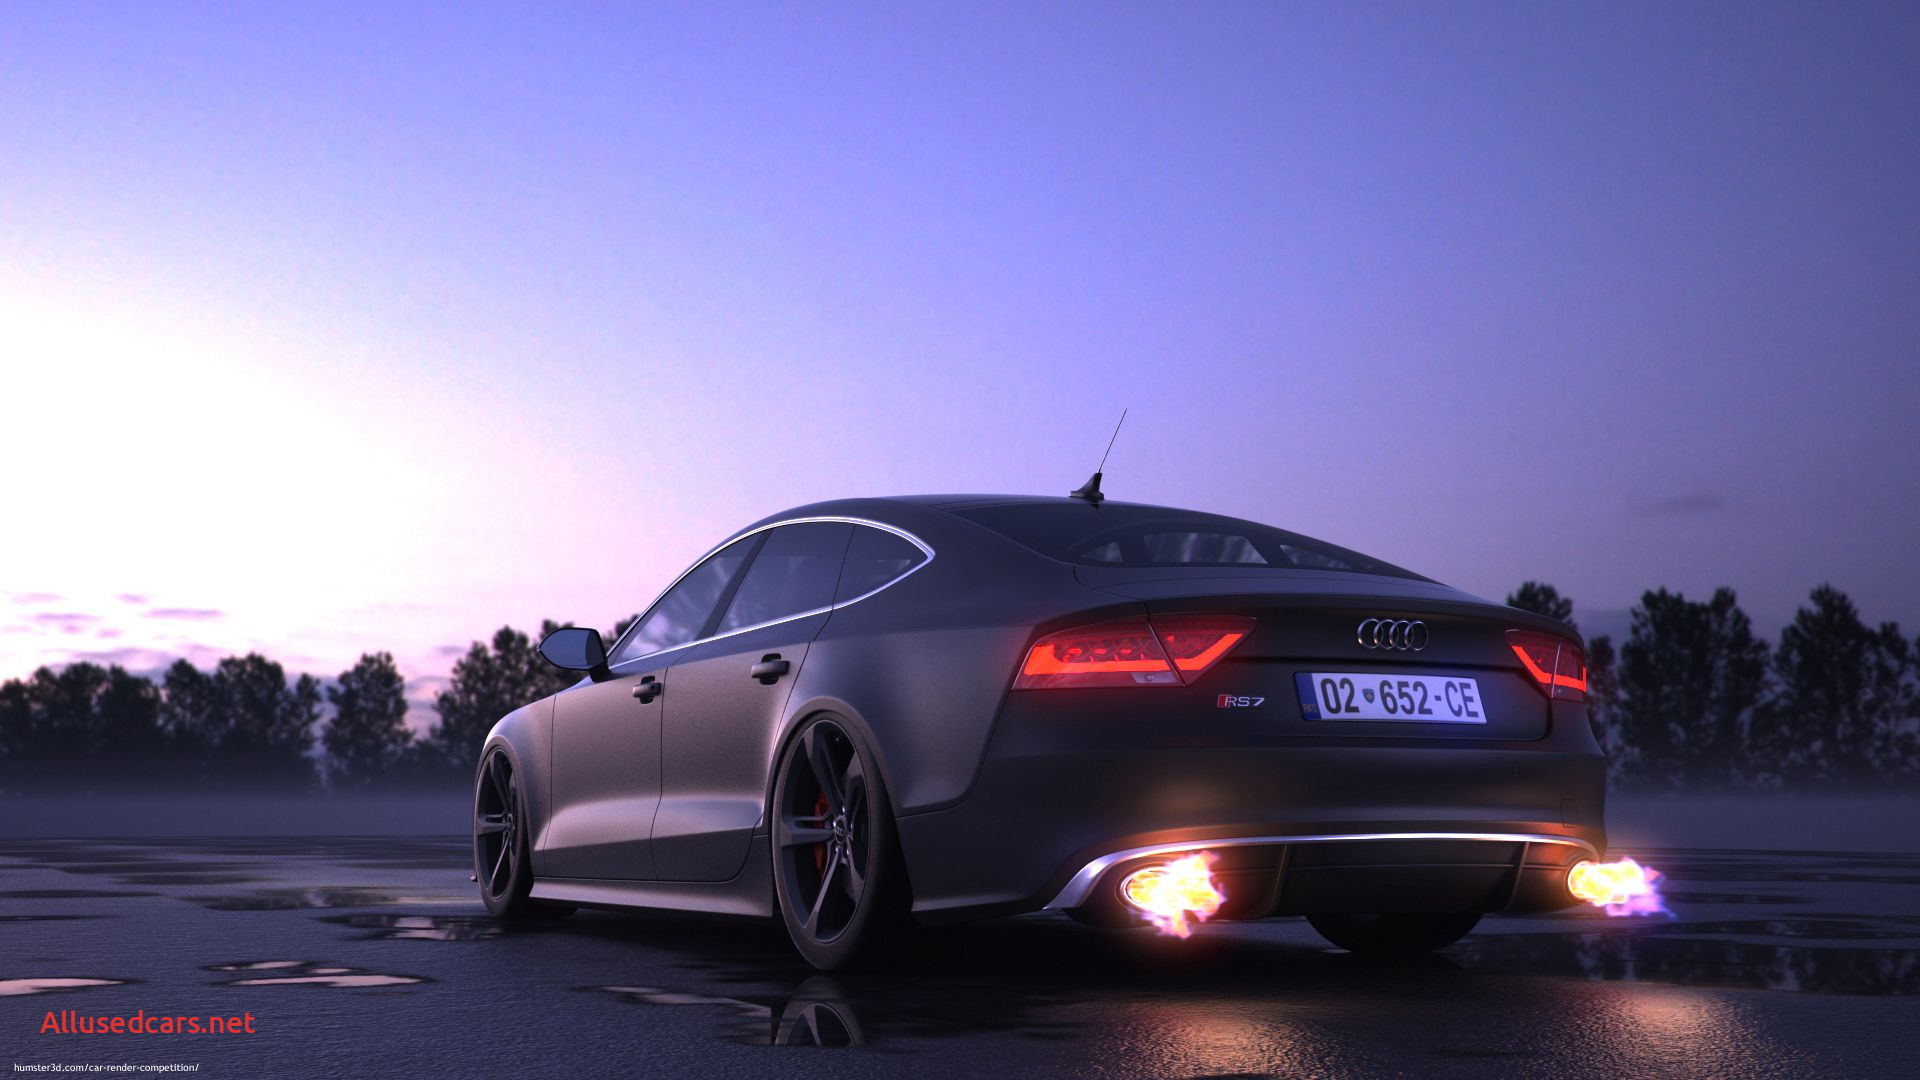 Audi A5 2014 Luxury Audi Rs7 Wallpapers top Free Audi Rs7 Backgrounds